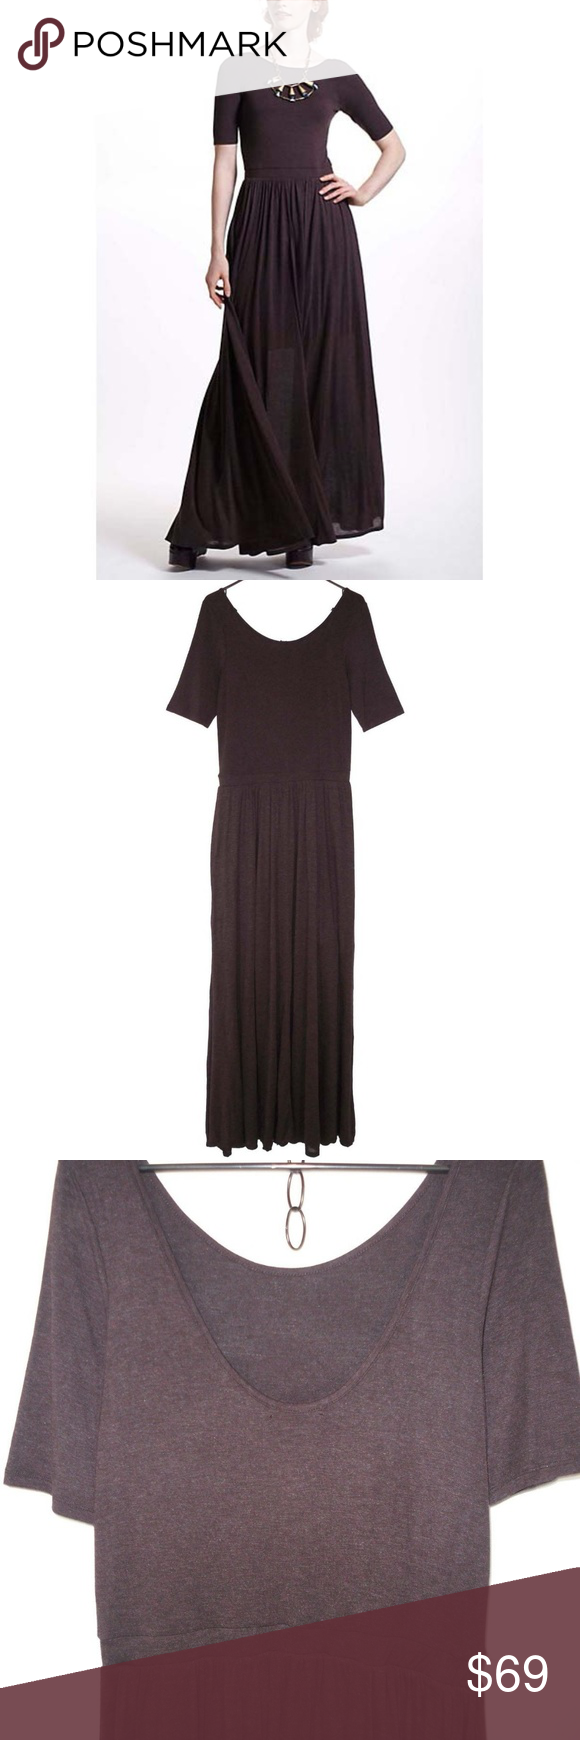 ac919b9c4d766 Bordeaux Anthropologie Scoopback Maxi Dress L Marvelous Scoopback Maxi Dress  from Bordeaux for Anthro. This